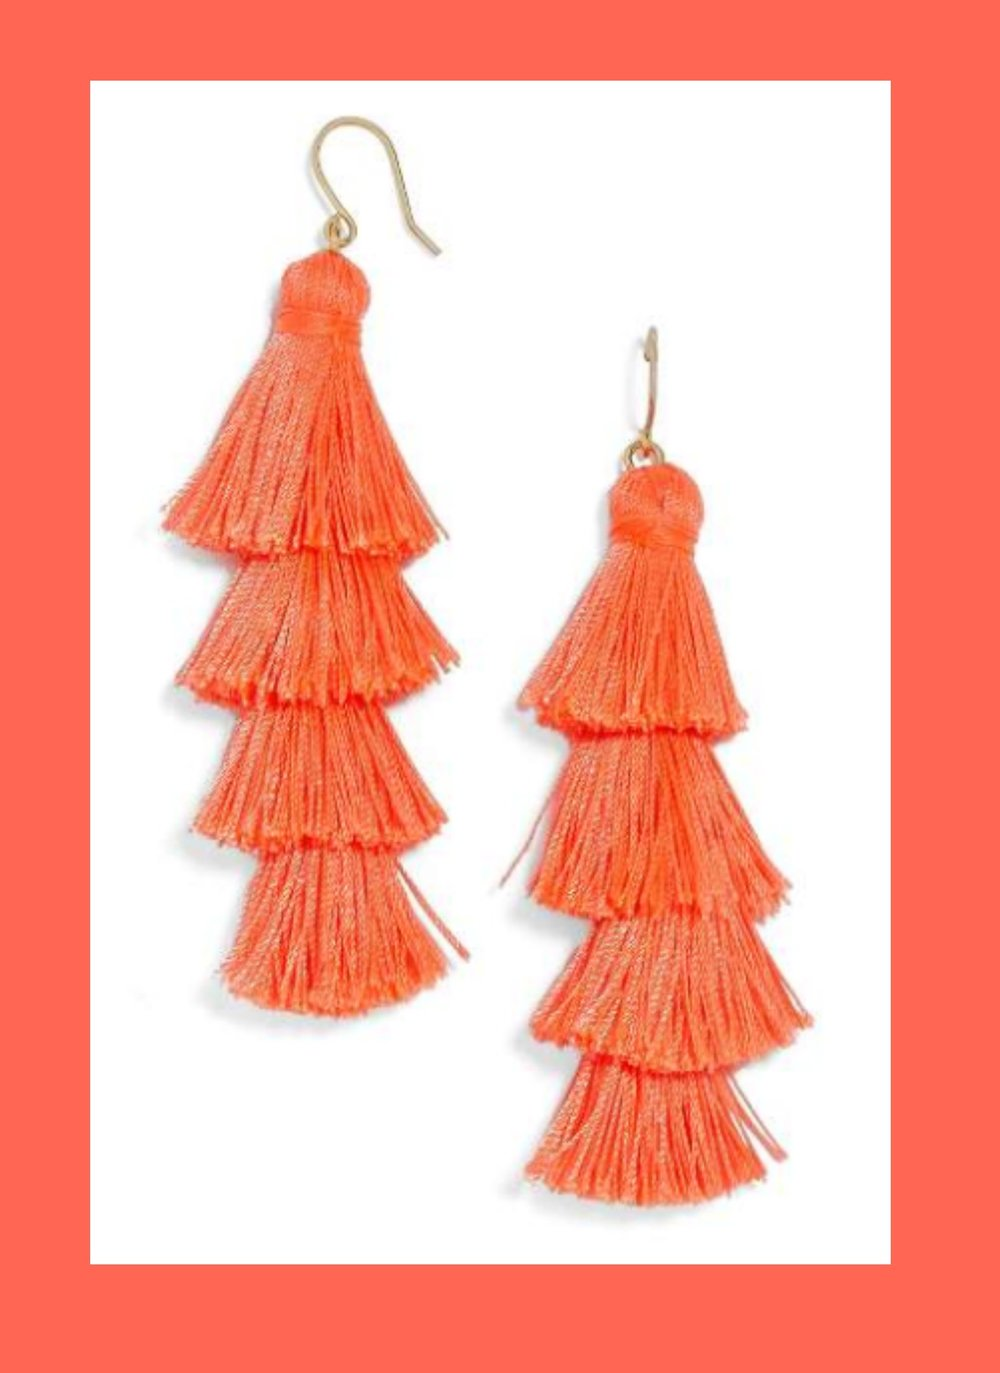 Baublebar Earrings - Things I'm obsessed with: anything fringe, especially Baublebar earrings! I'm a bit of a shopaholic.